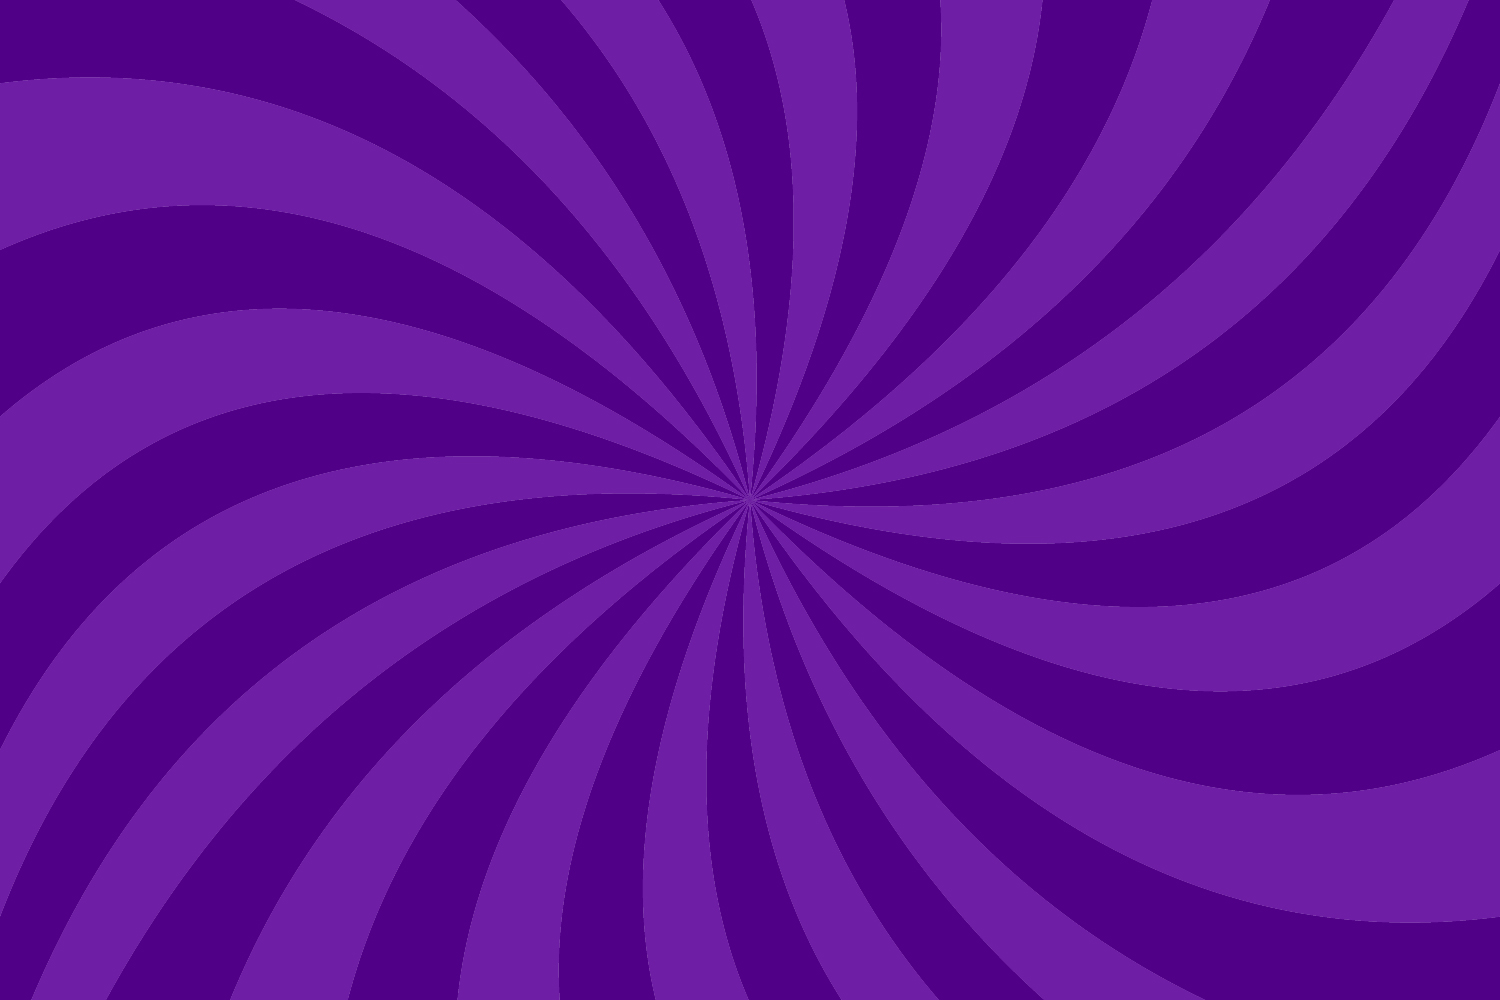 24 Purple Spiral Backgrounds AI, EPS, JPG 5000x5000 example image 2